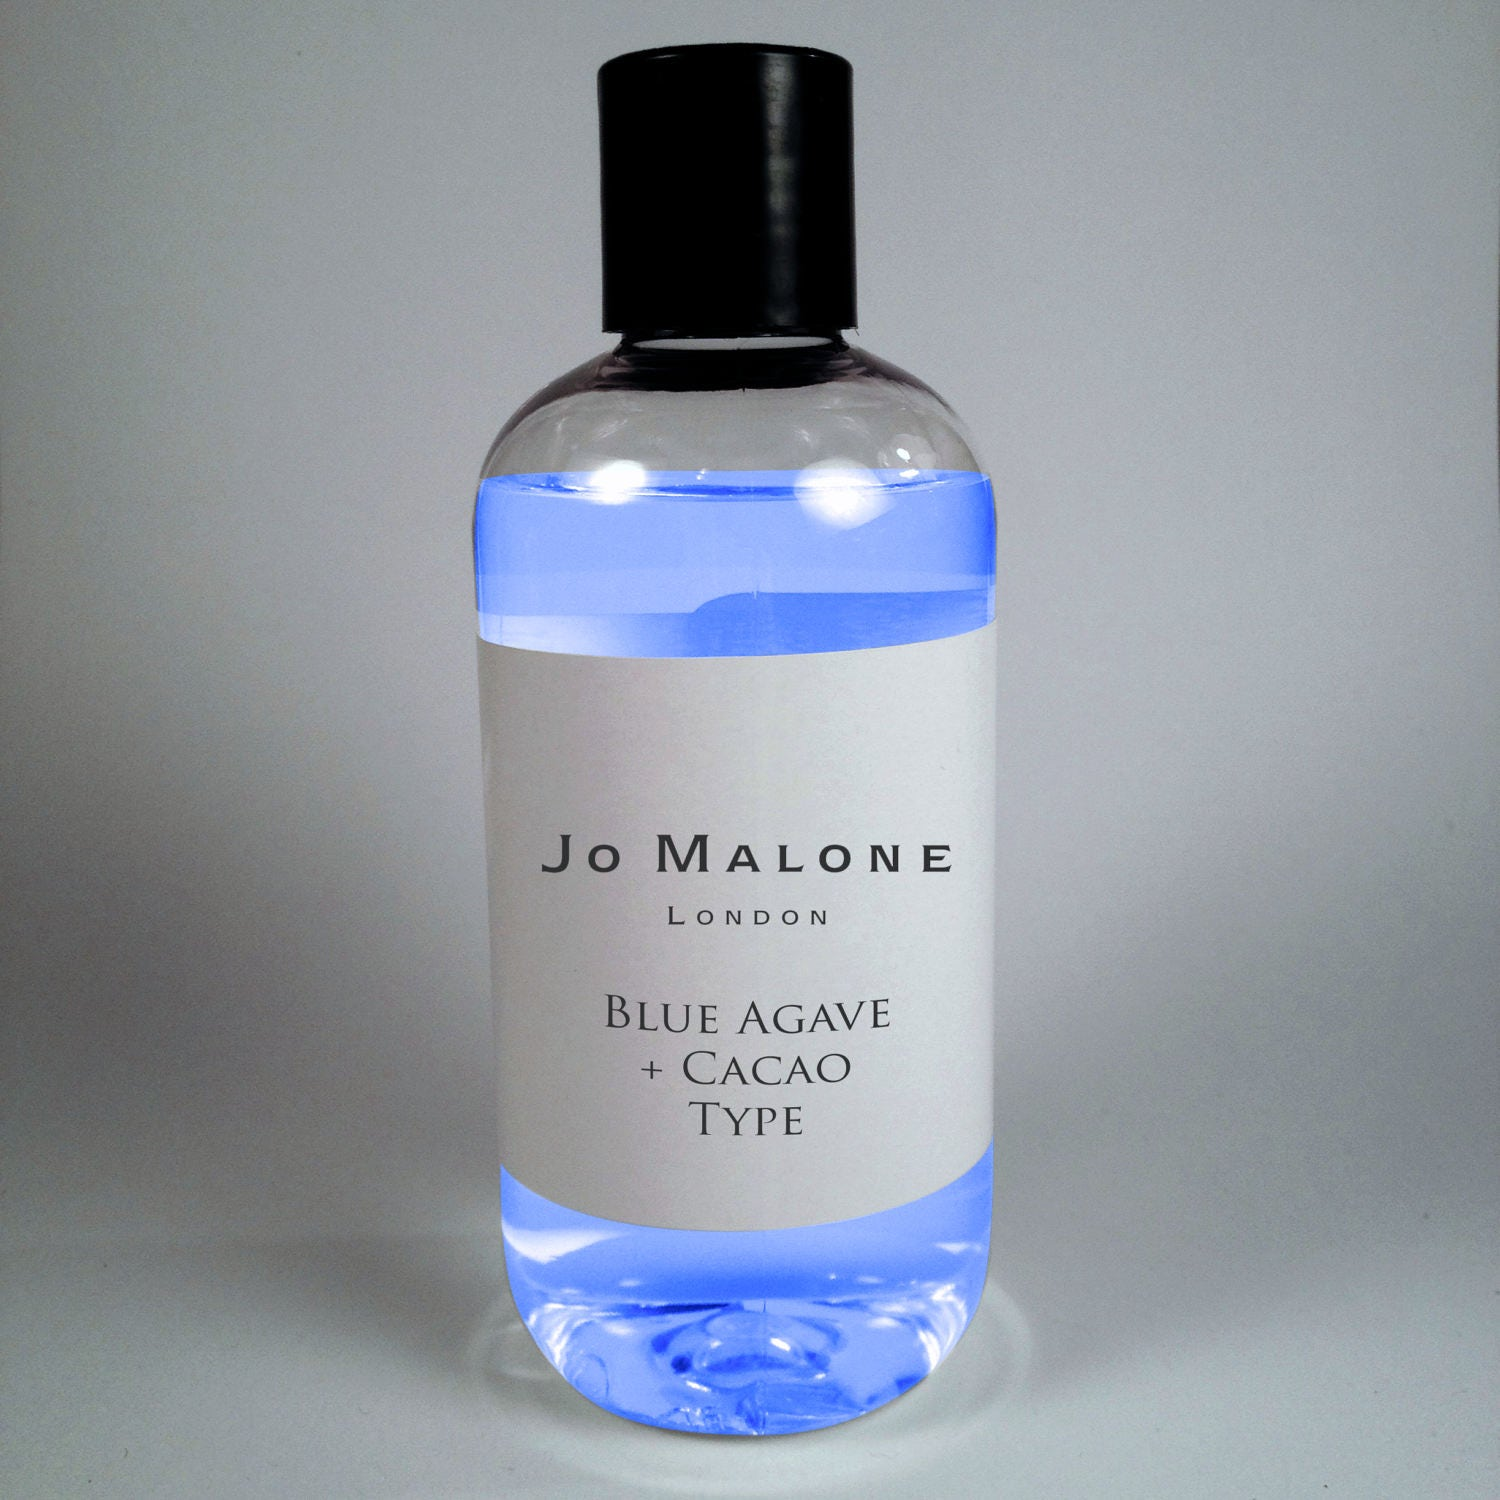 Blue Agava Amp Cacao Type Jo Malone Dupe Vegan Cruelty Free